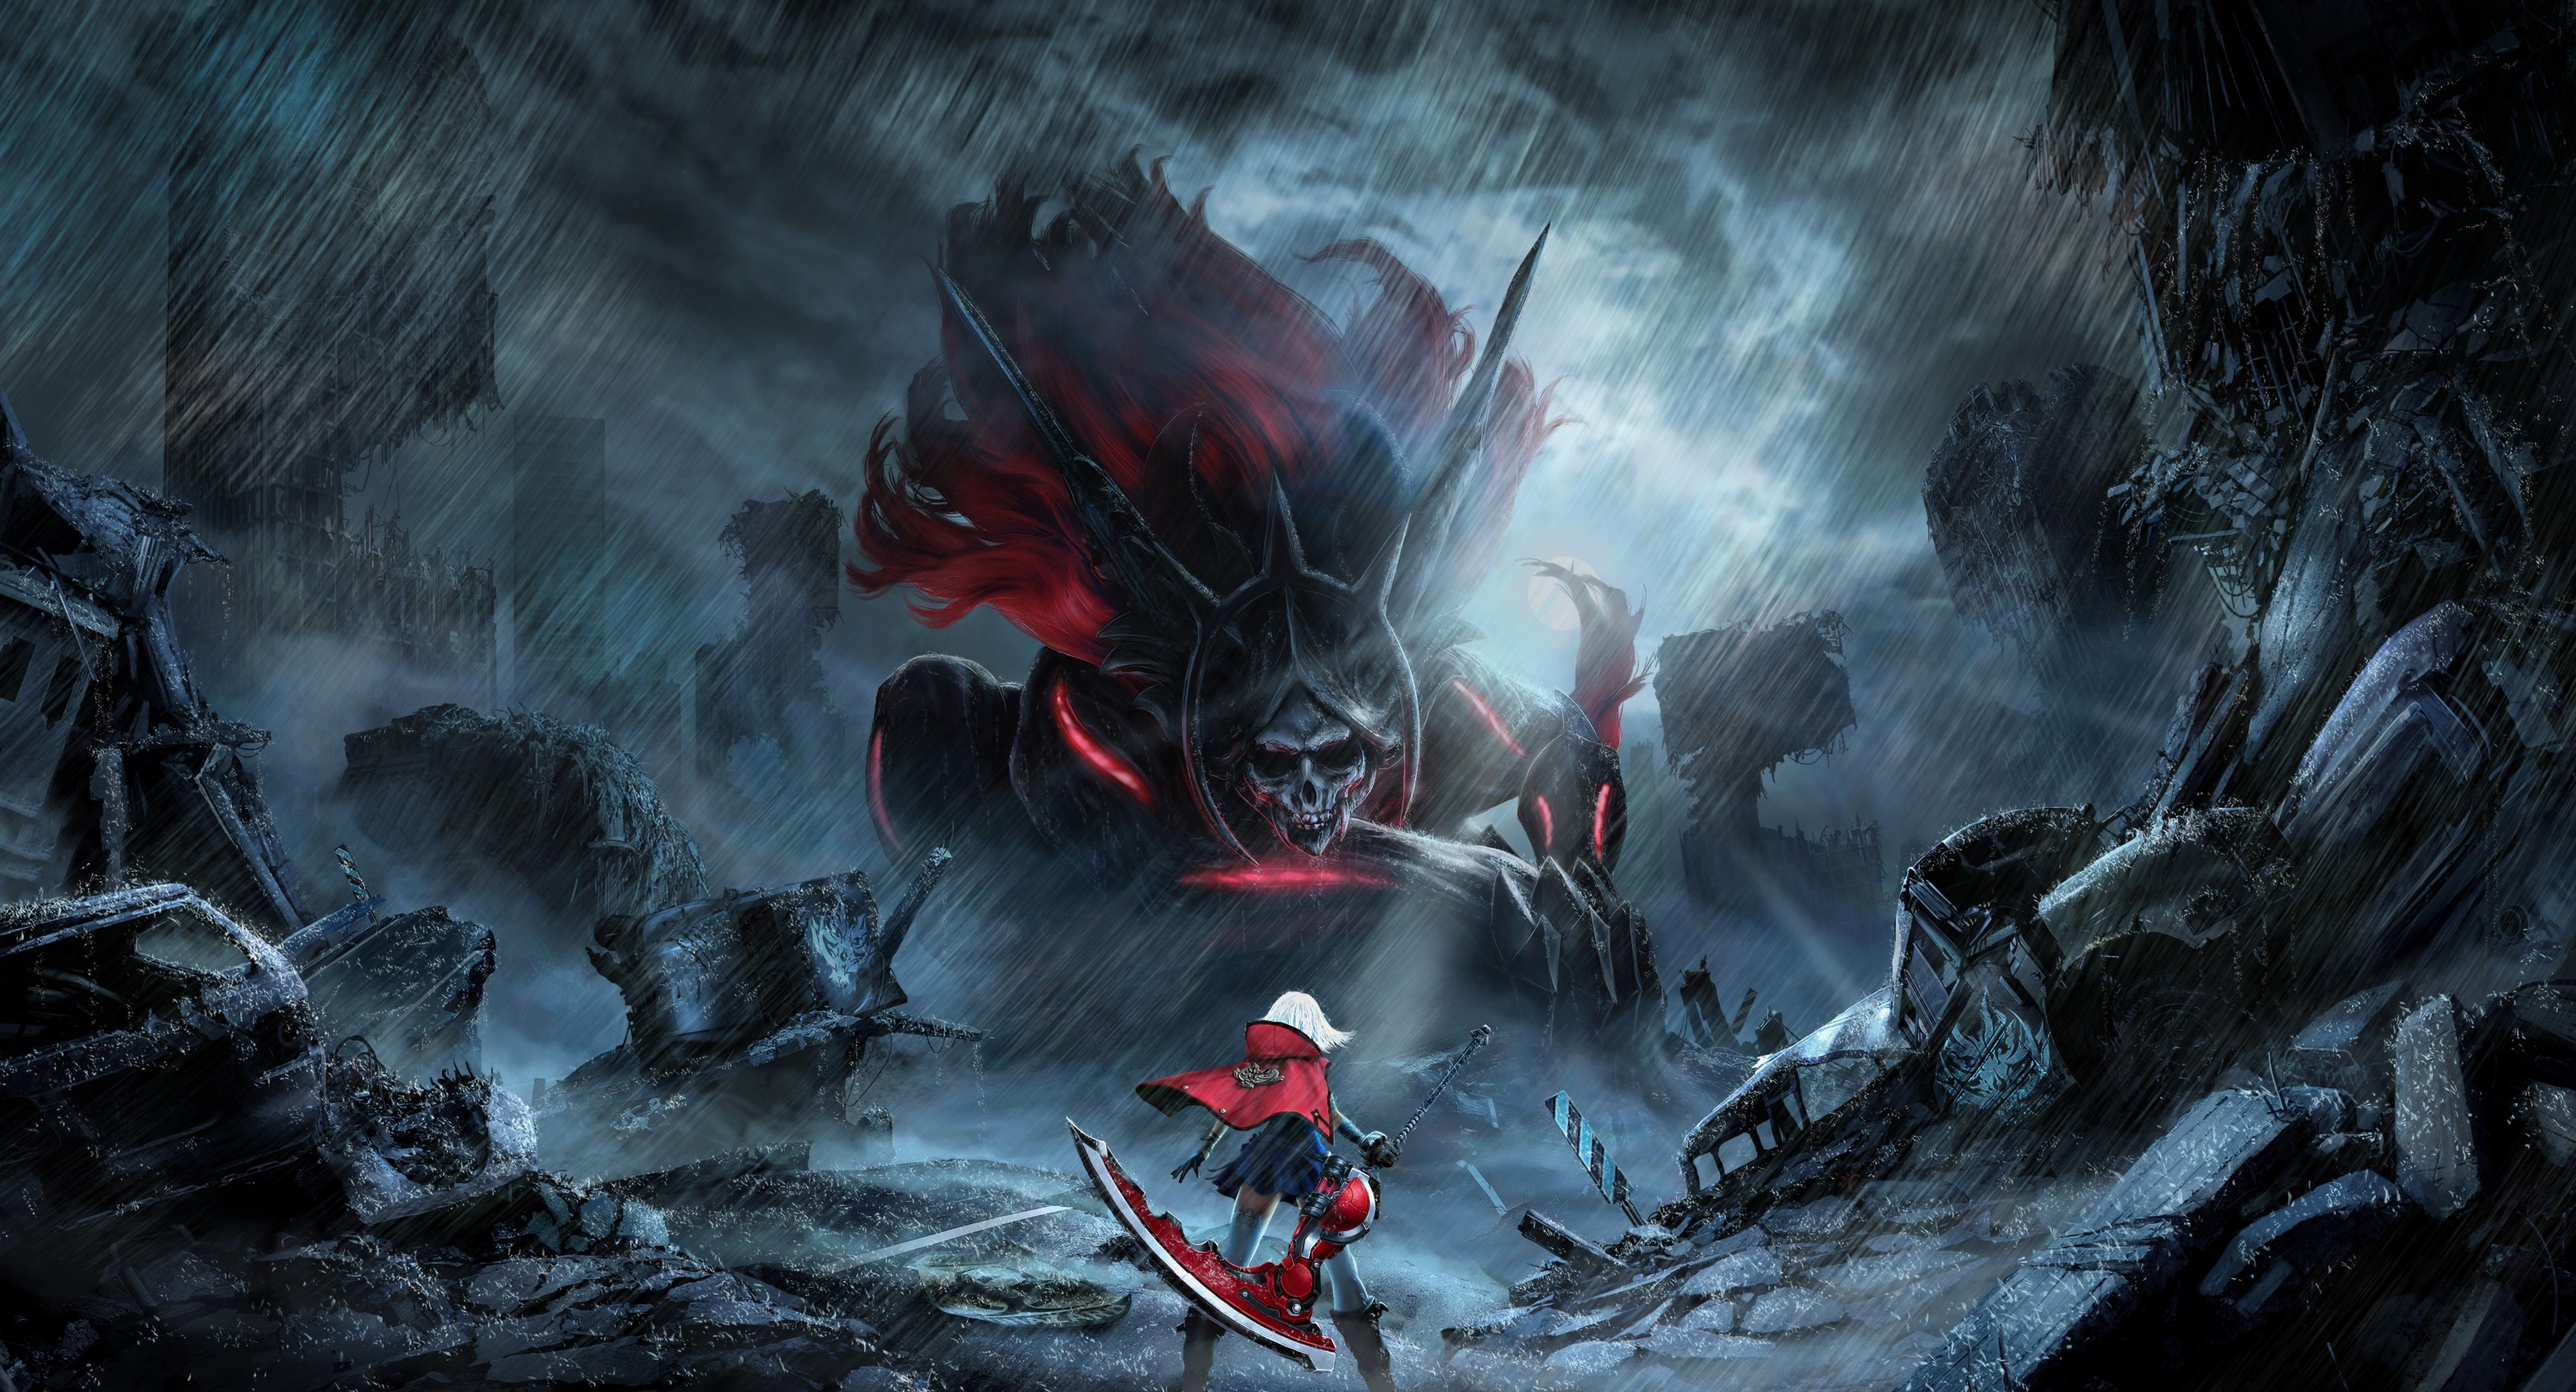 3840x2075 god eater 2 4k high def wallpaper Cover